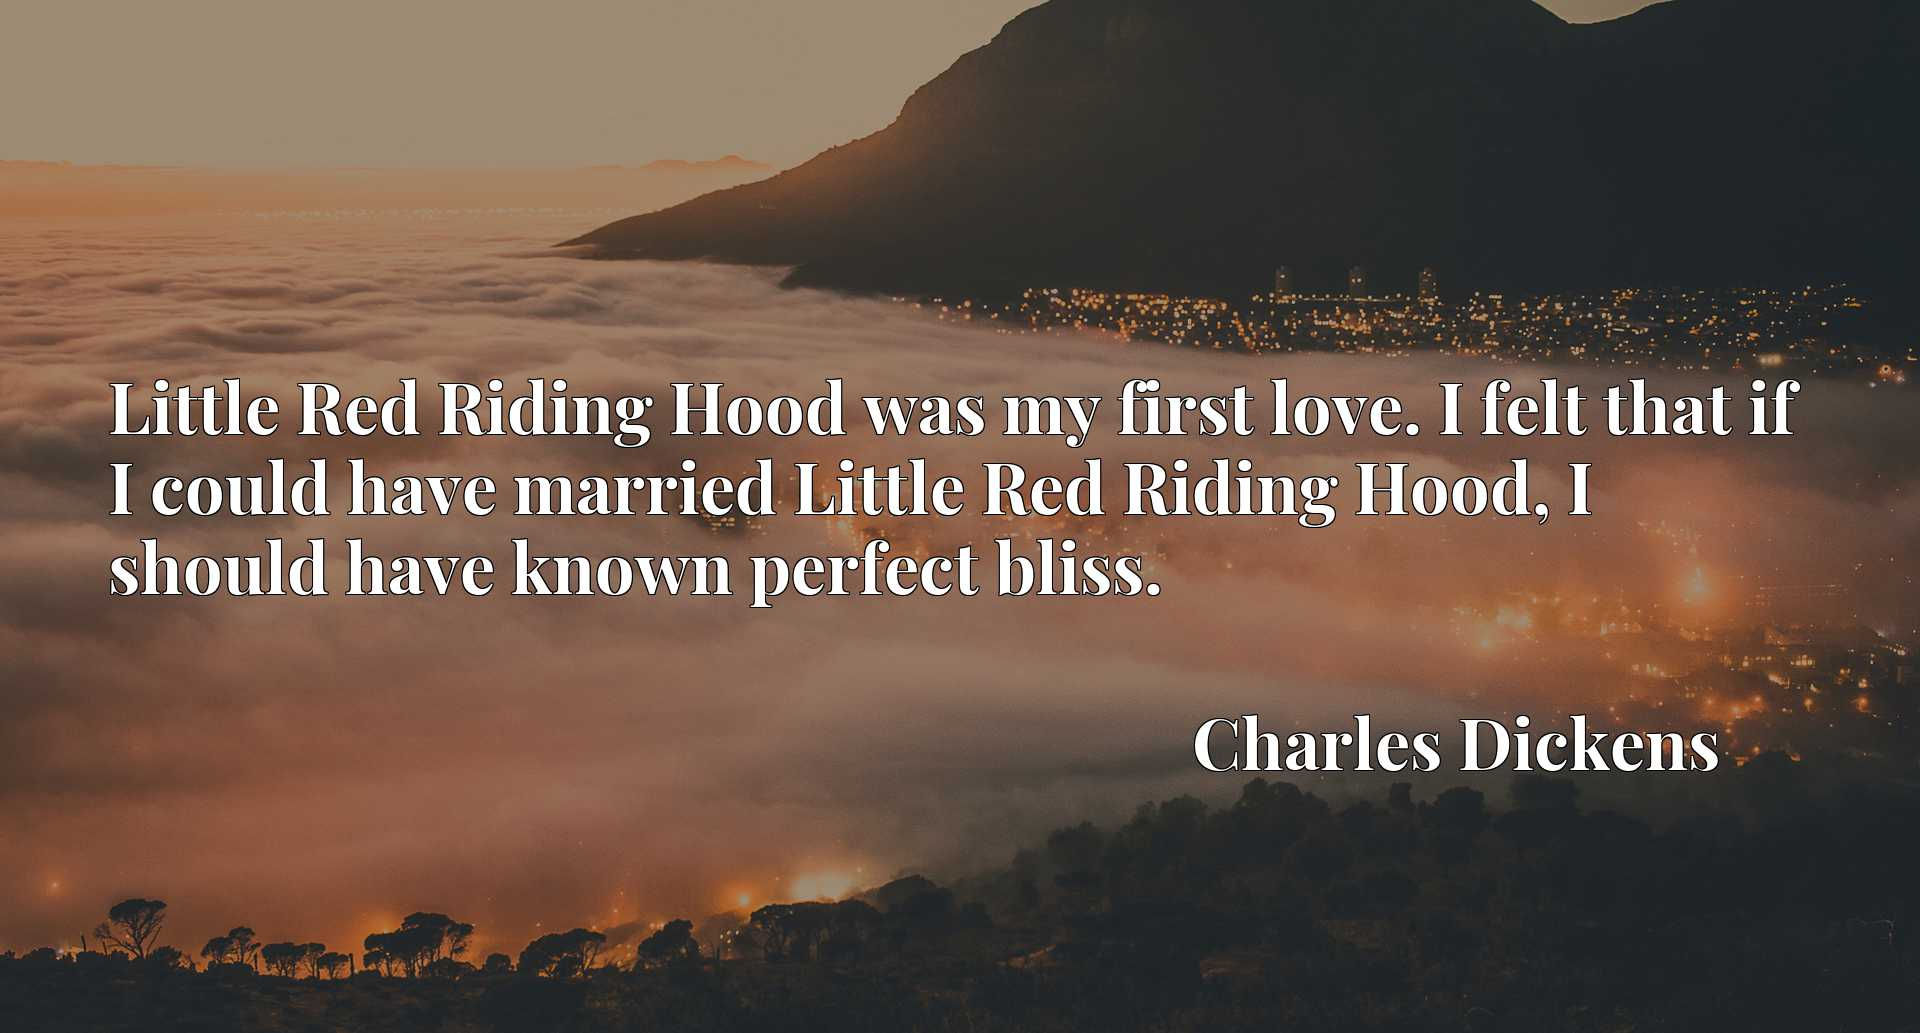 Little Red Riding Hood was my first love. I felt that if I could have married Little Red Riding Hood, I should have known perfect bliss.